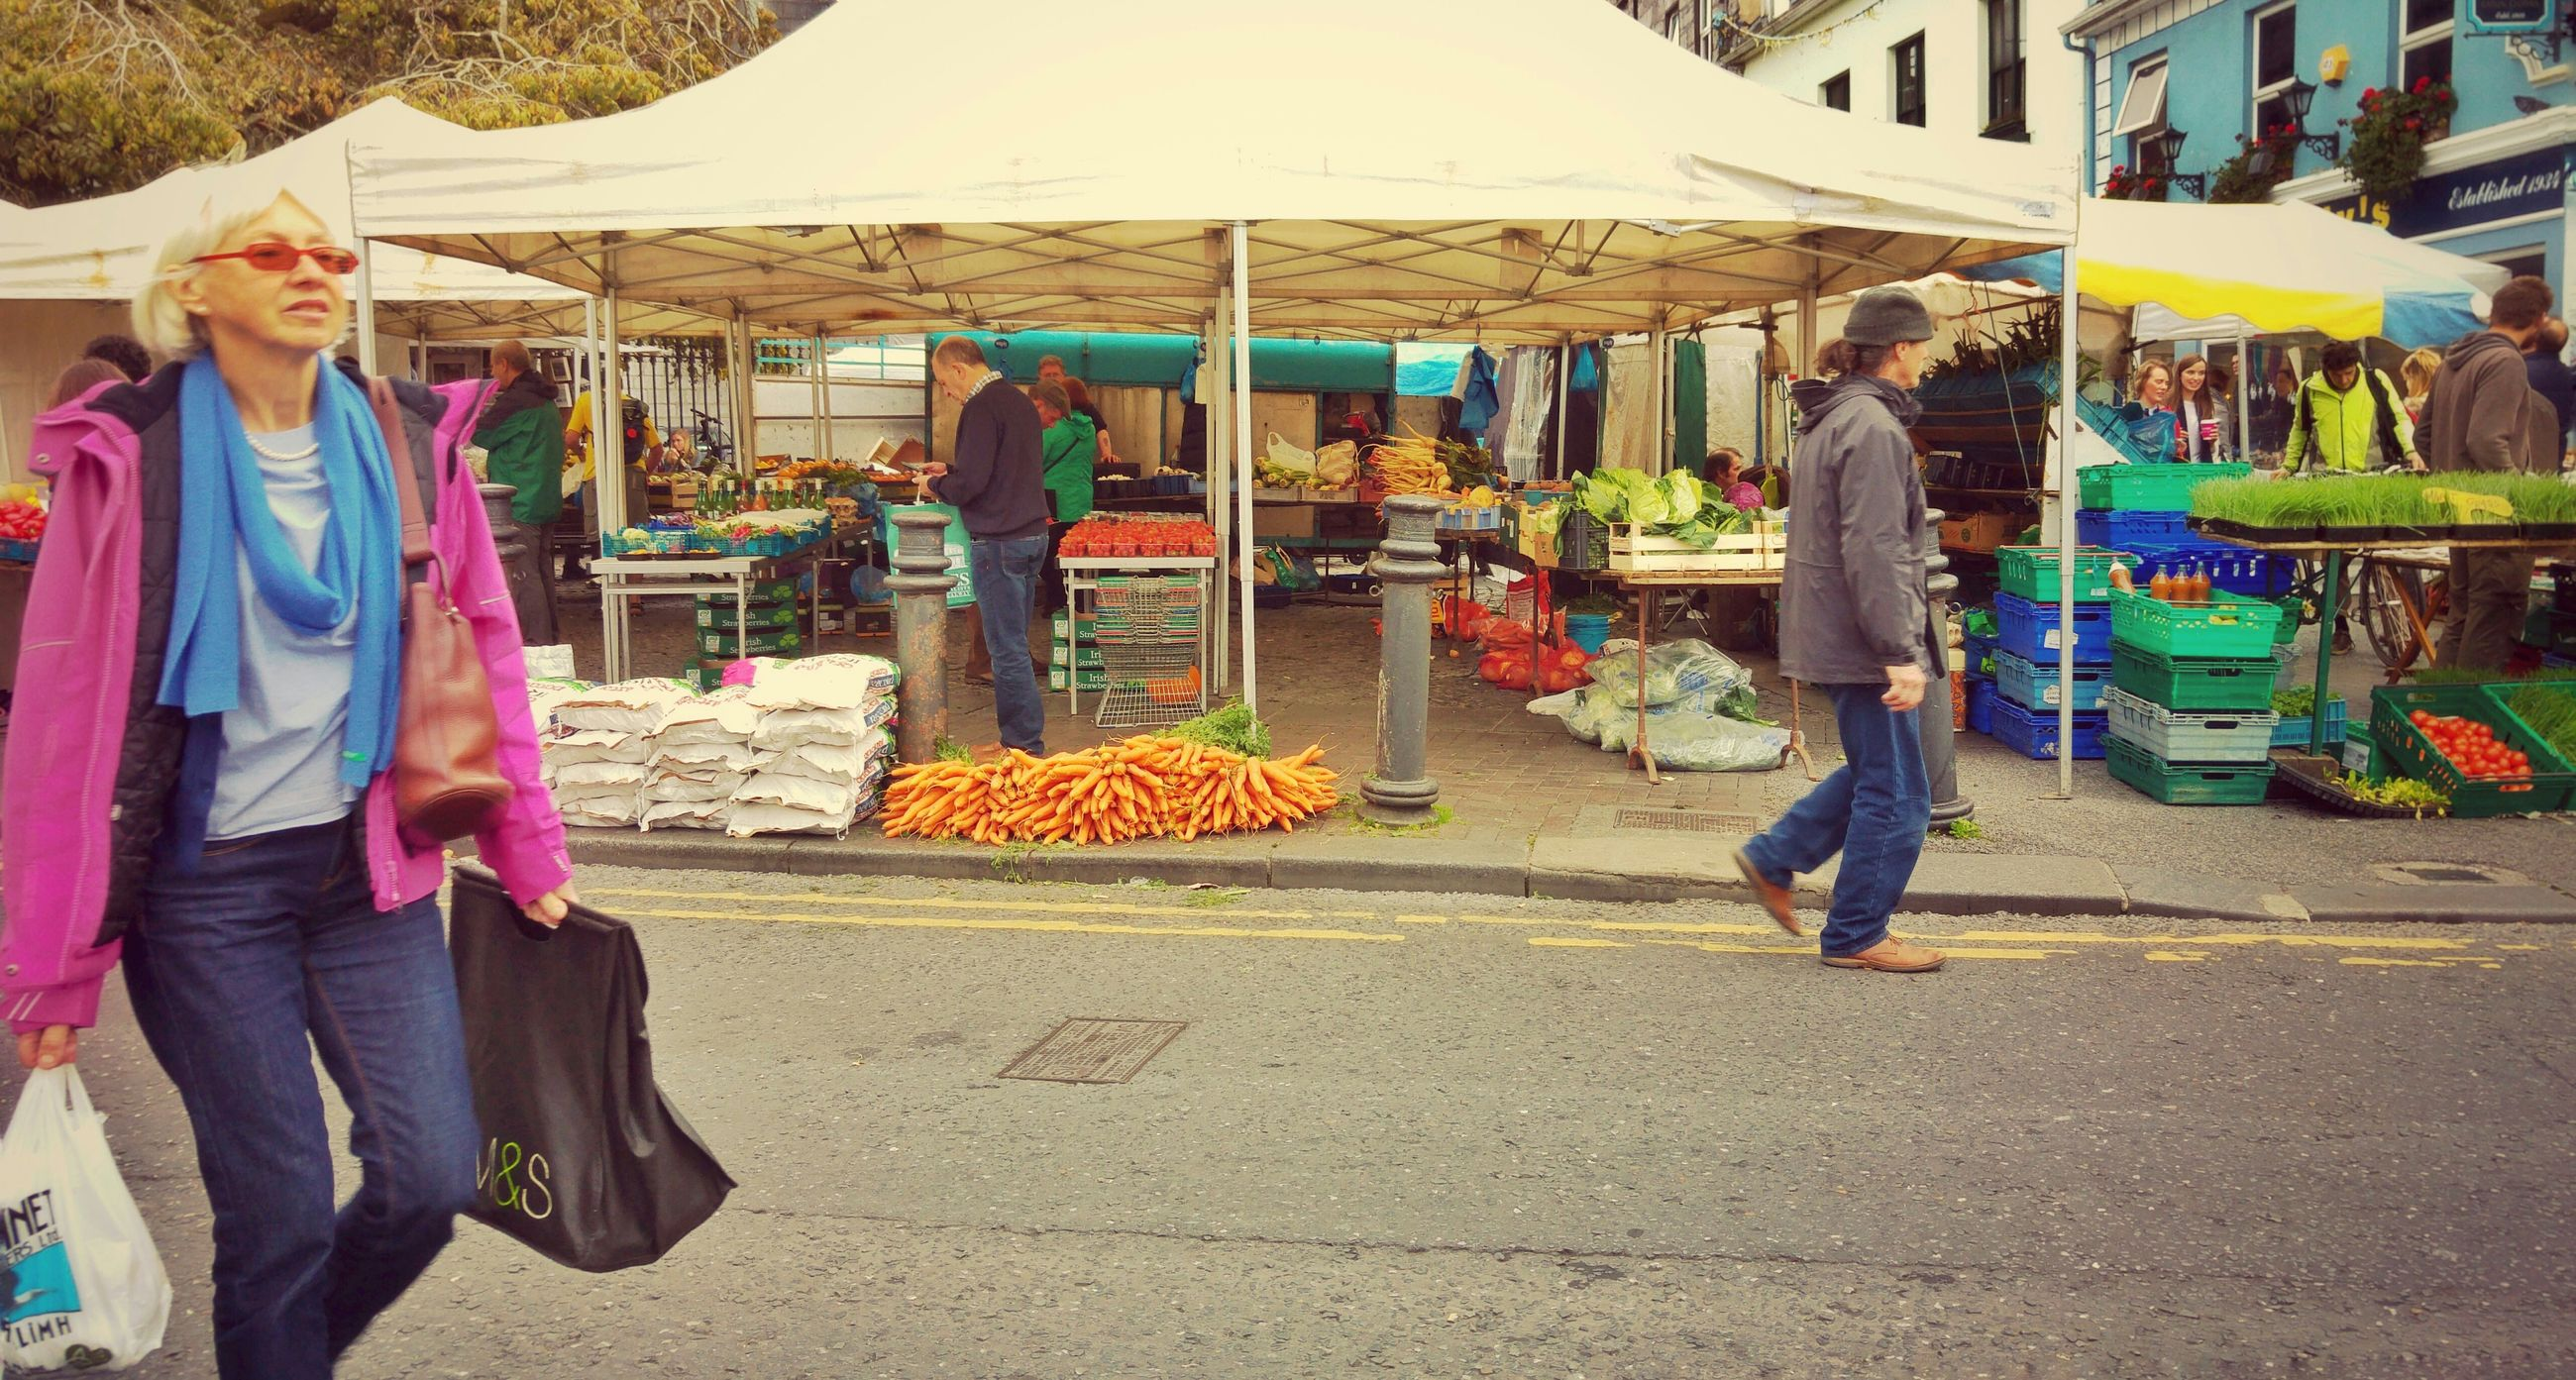 market stall, retail, for sale, market, lifestyles, men, food and drink, person, leisure activity, food, casual clothing, standing, variation, freshness, choice, fruit, small business, selling